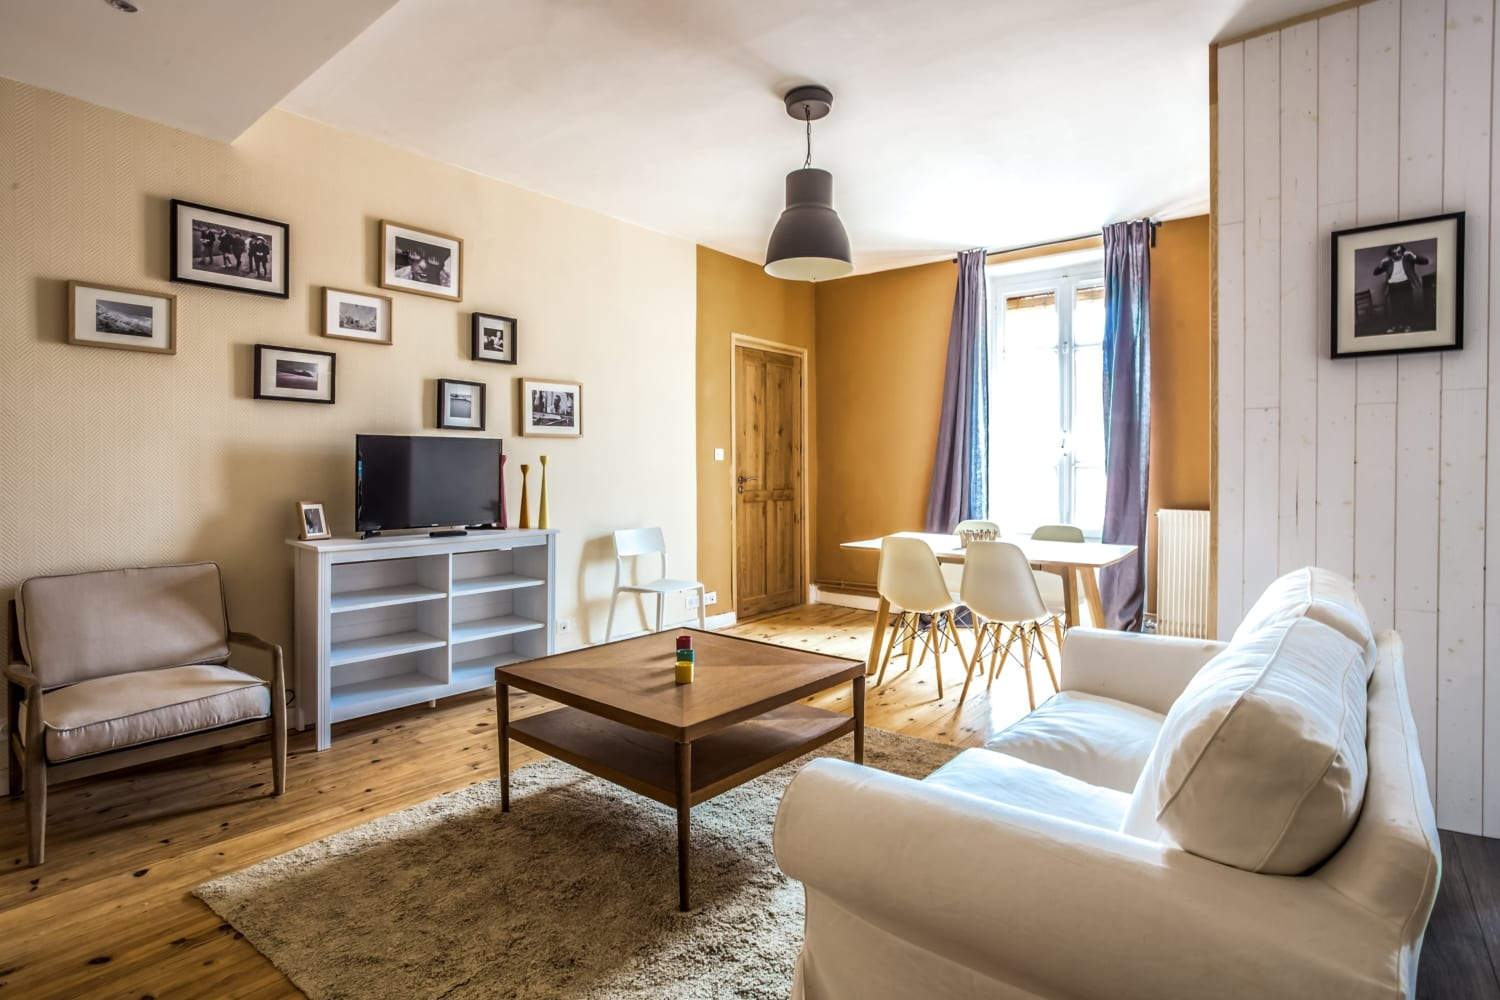 Fully equipped shared apartment in Lyon